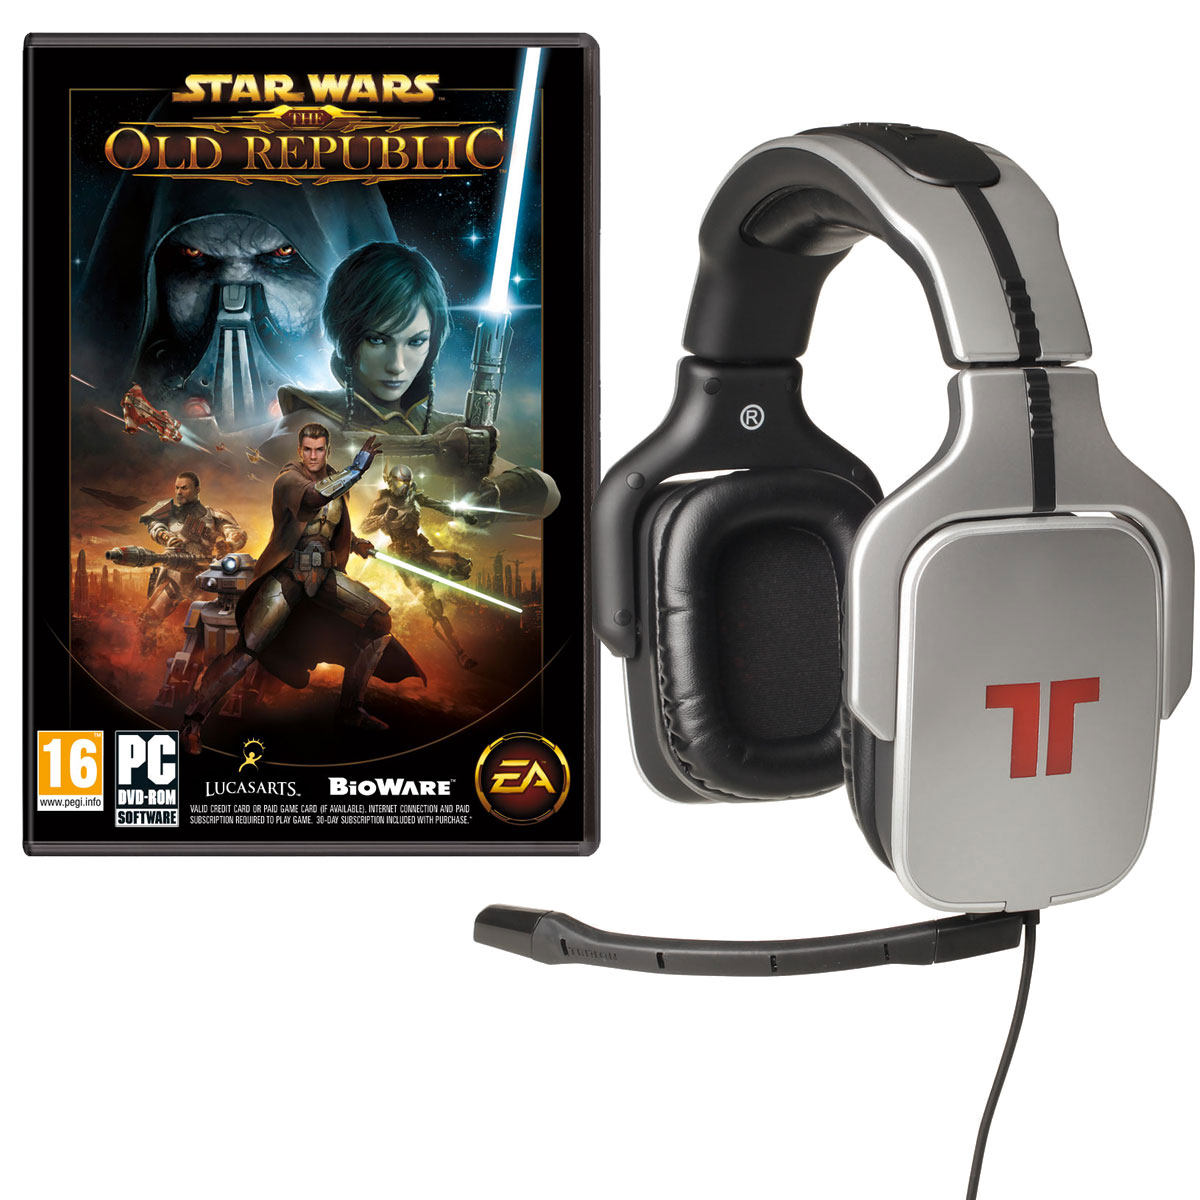 Micro-casque gamer Tritton AX Pro + Star Wars : The Old Republic Casque-micro pour gamer (compatible PC / MAC / PS3 / XBOX 360) + Star Wars : The Old Republic (PC)